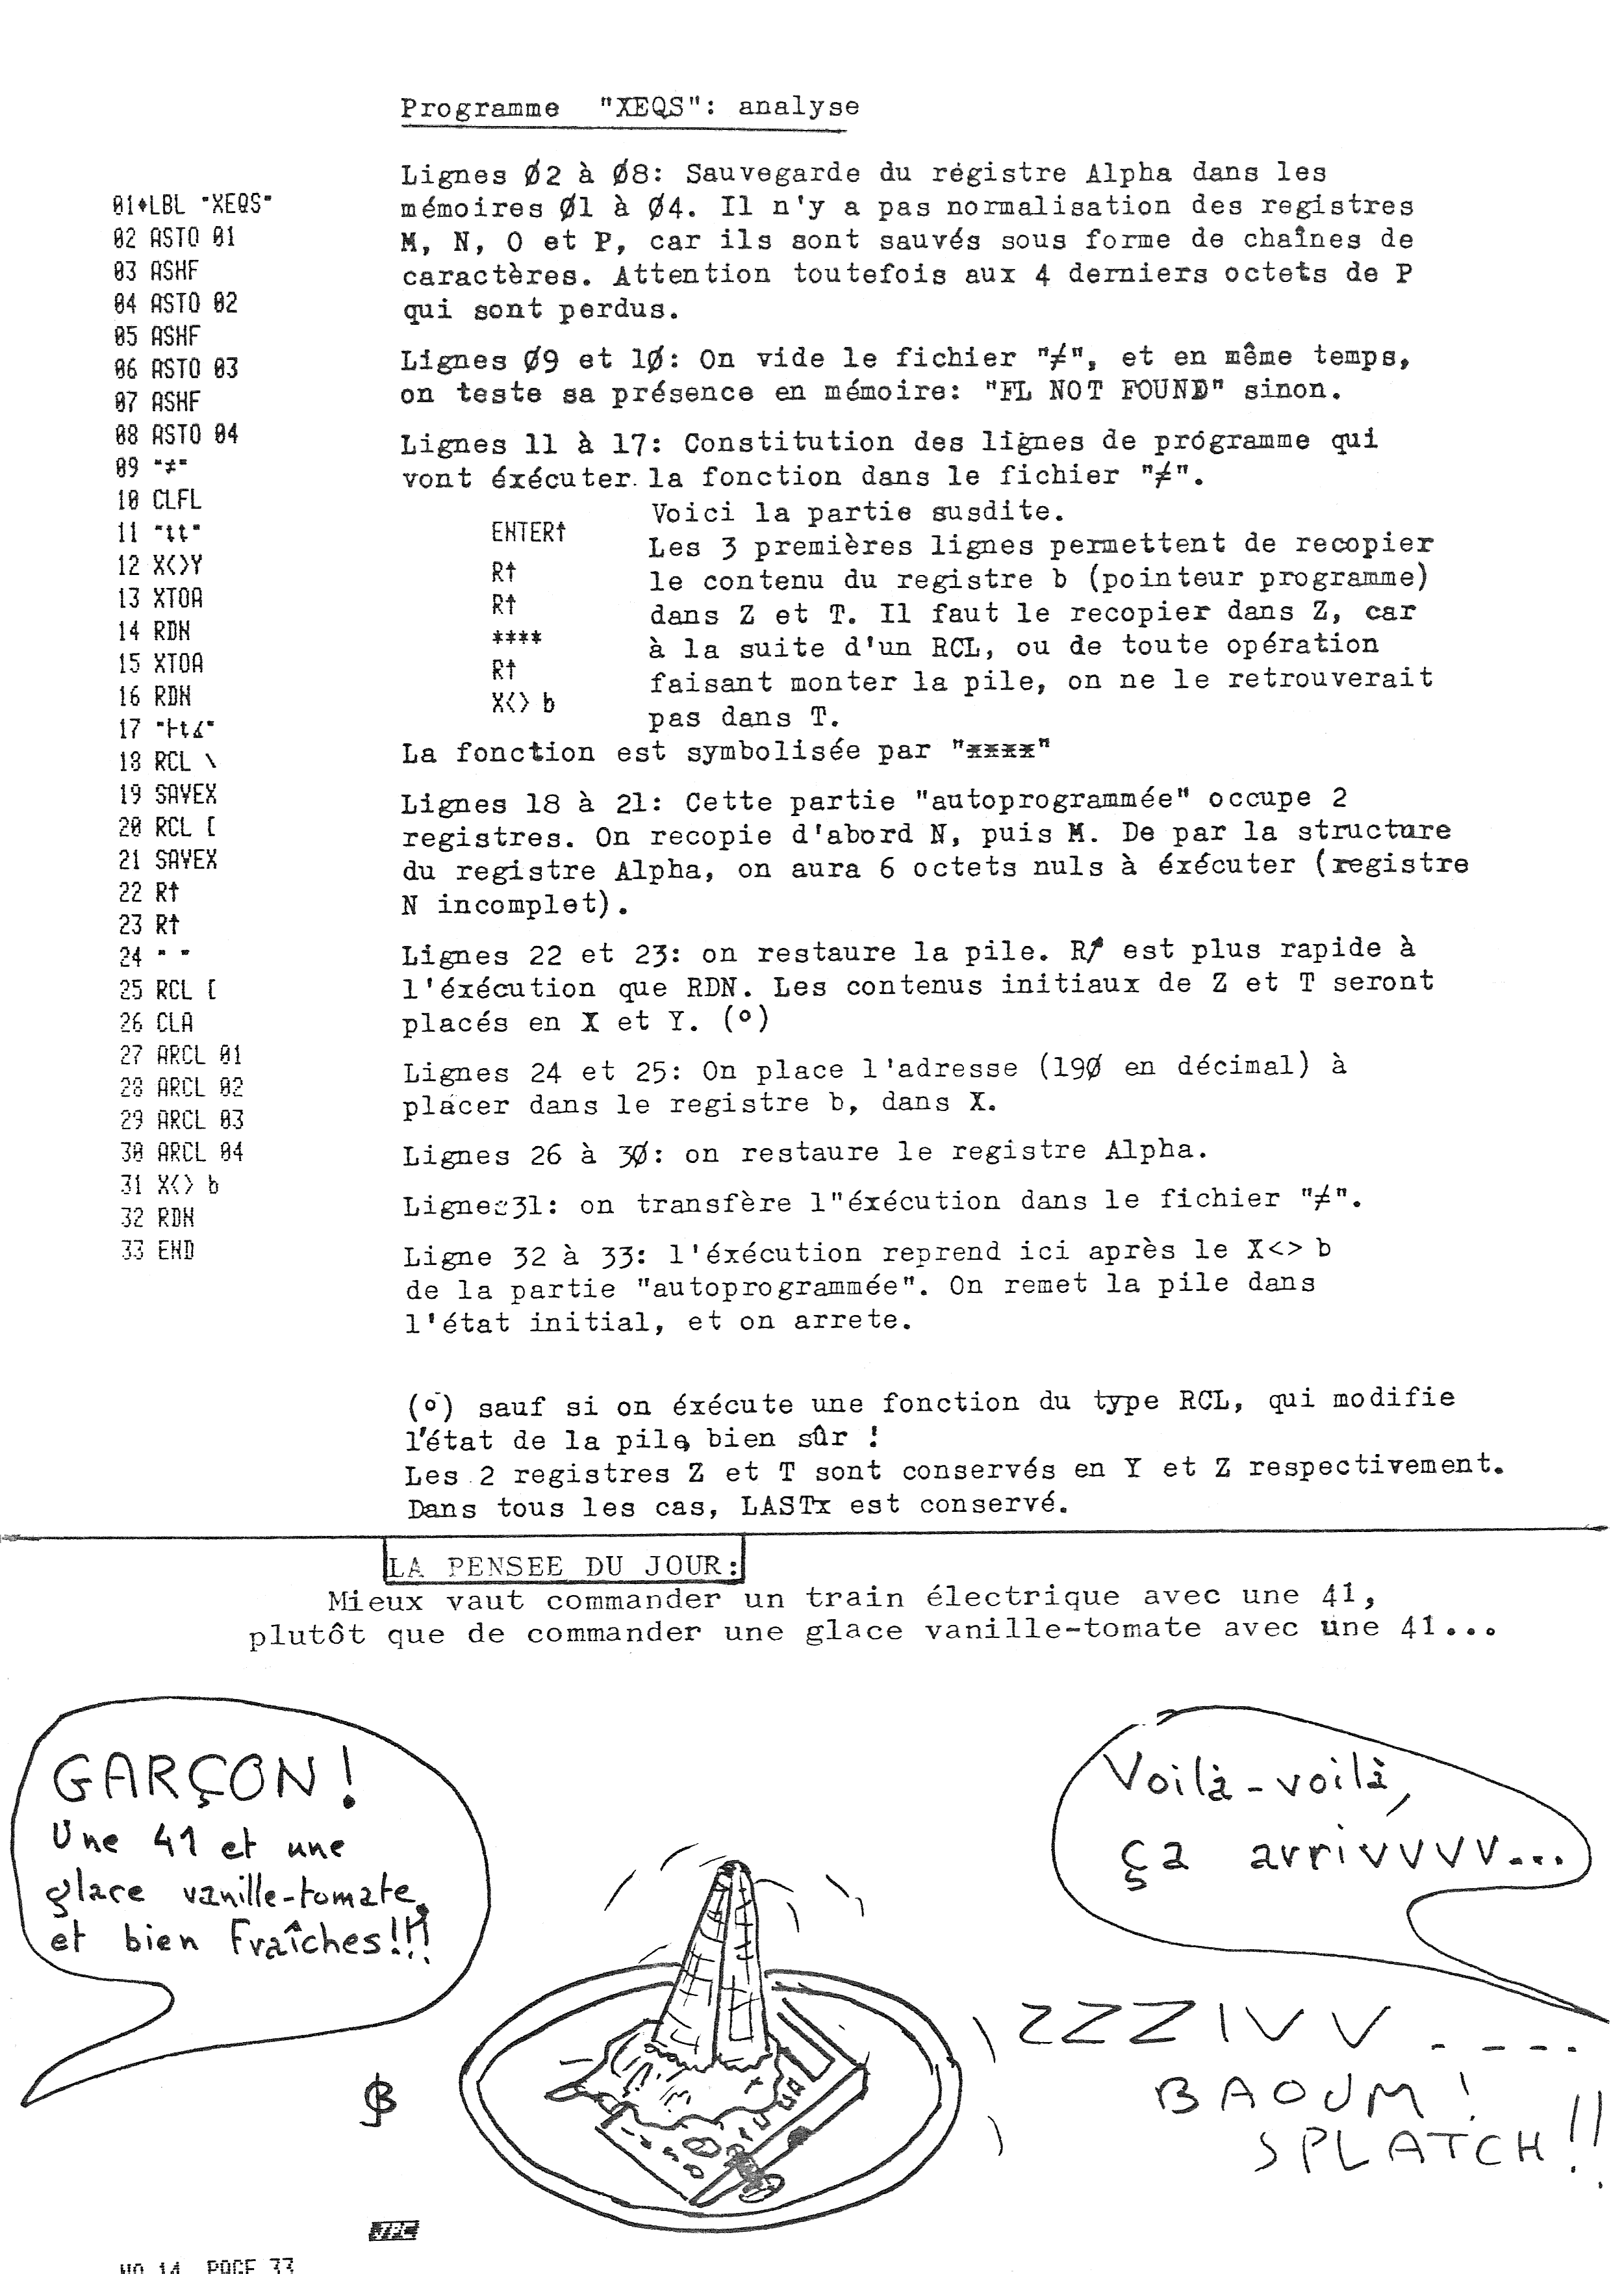 Jp-14-page-39-1000